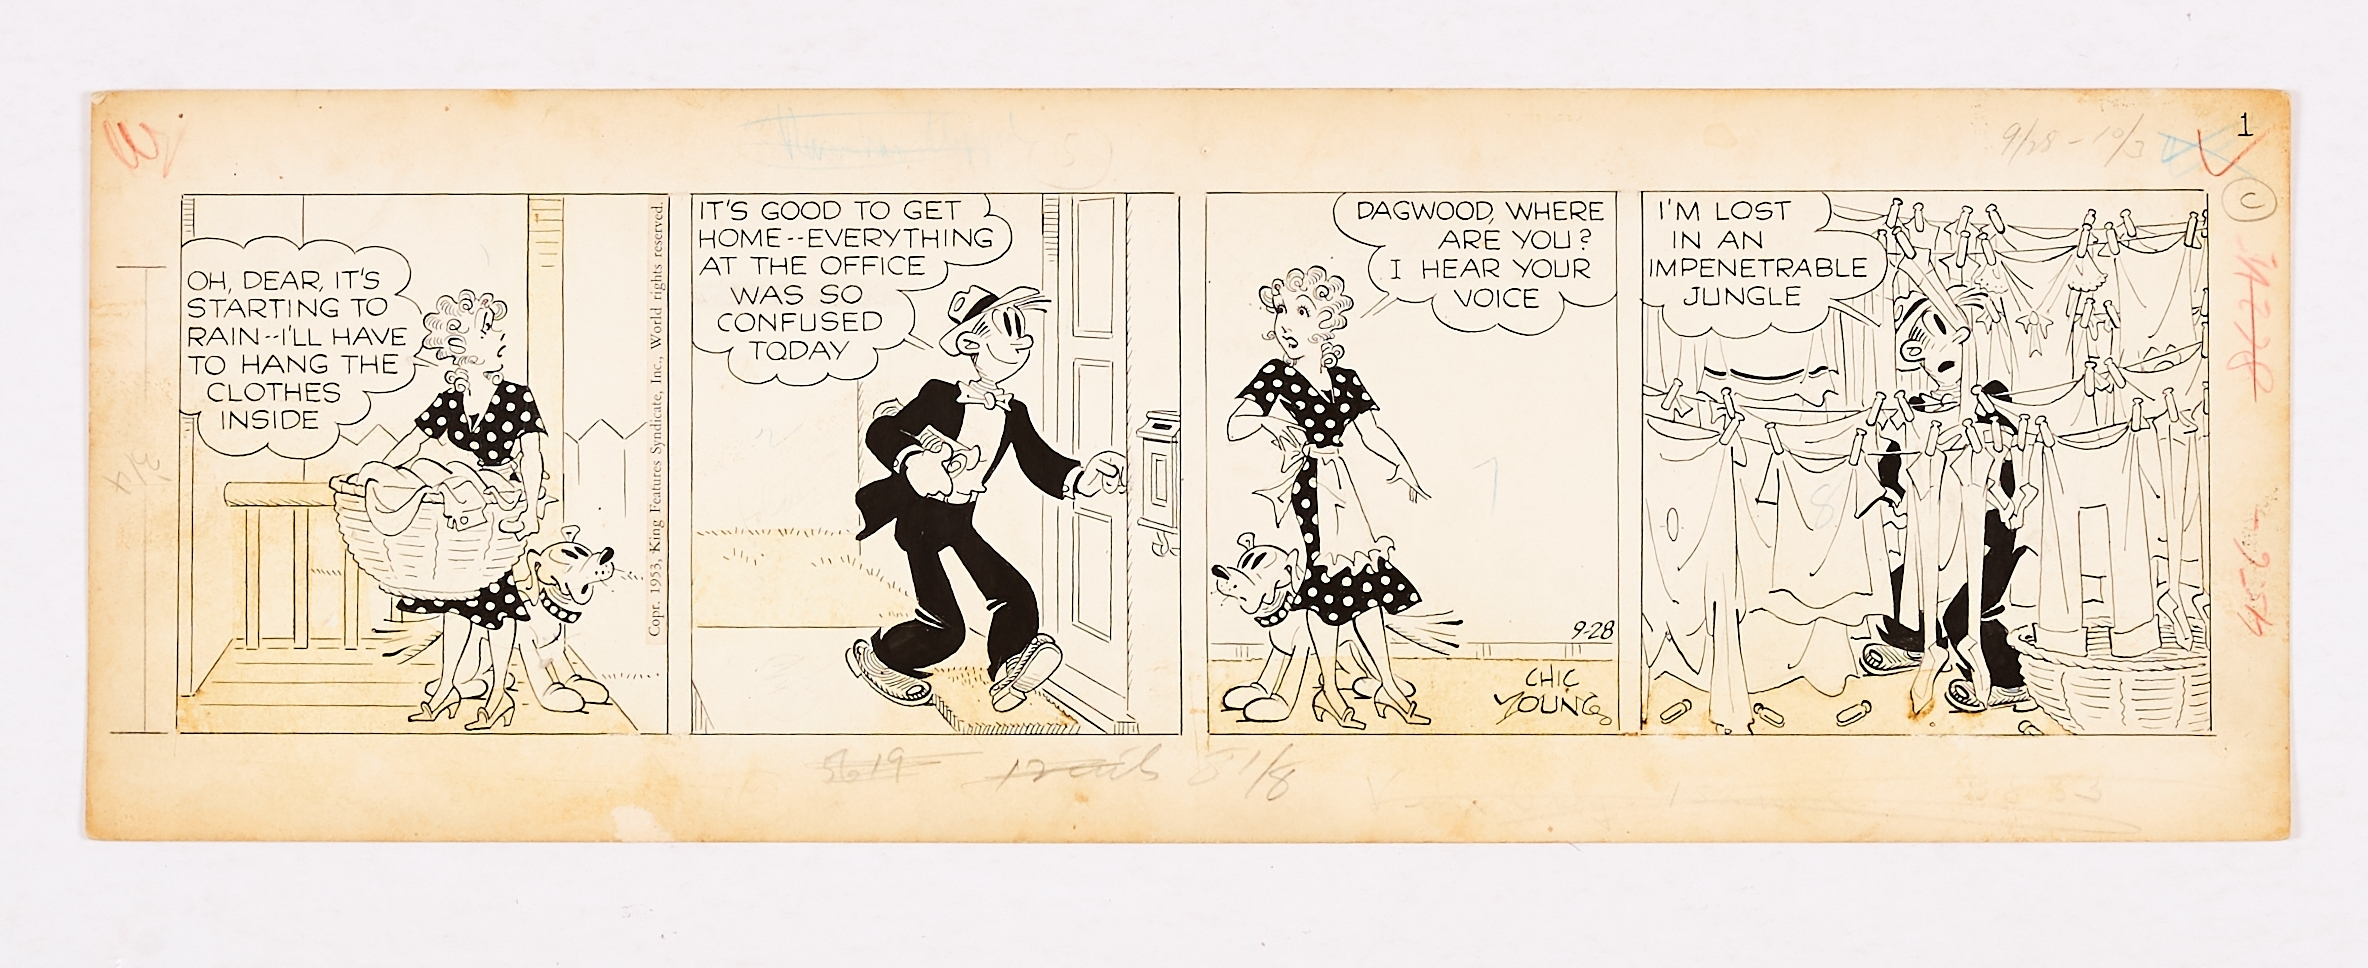 Blondie and Dagwood original artwork comic strip (1953) signed by artist, Chic Young. Indian ink